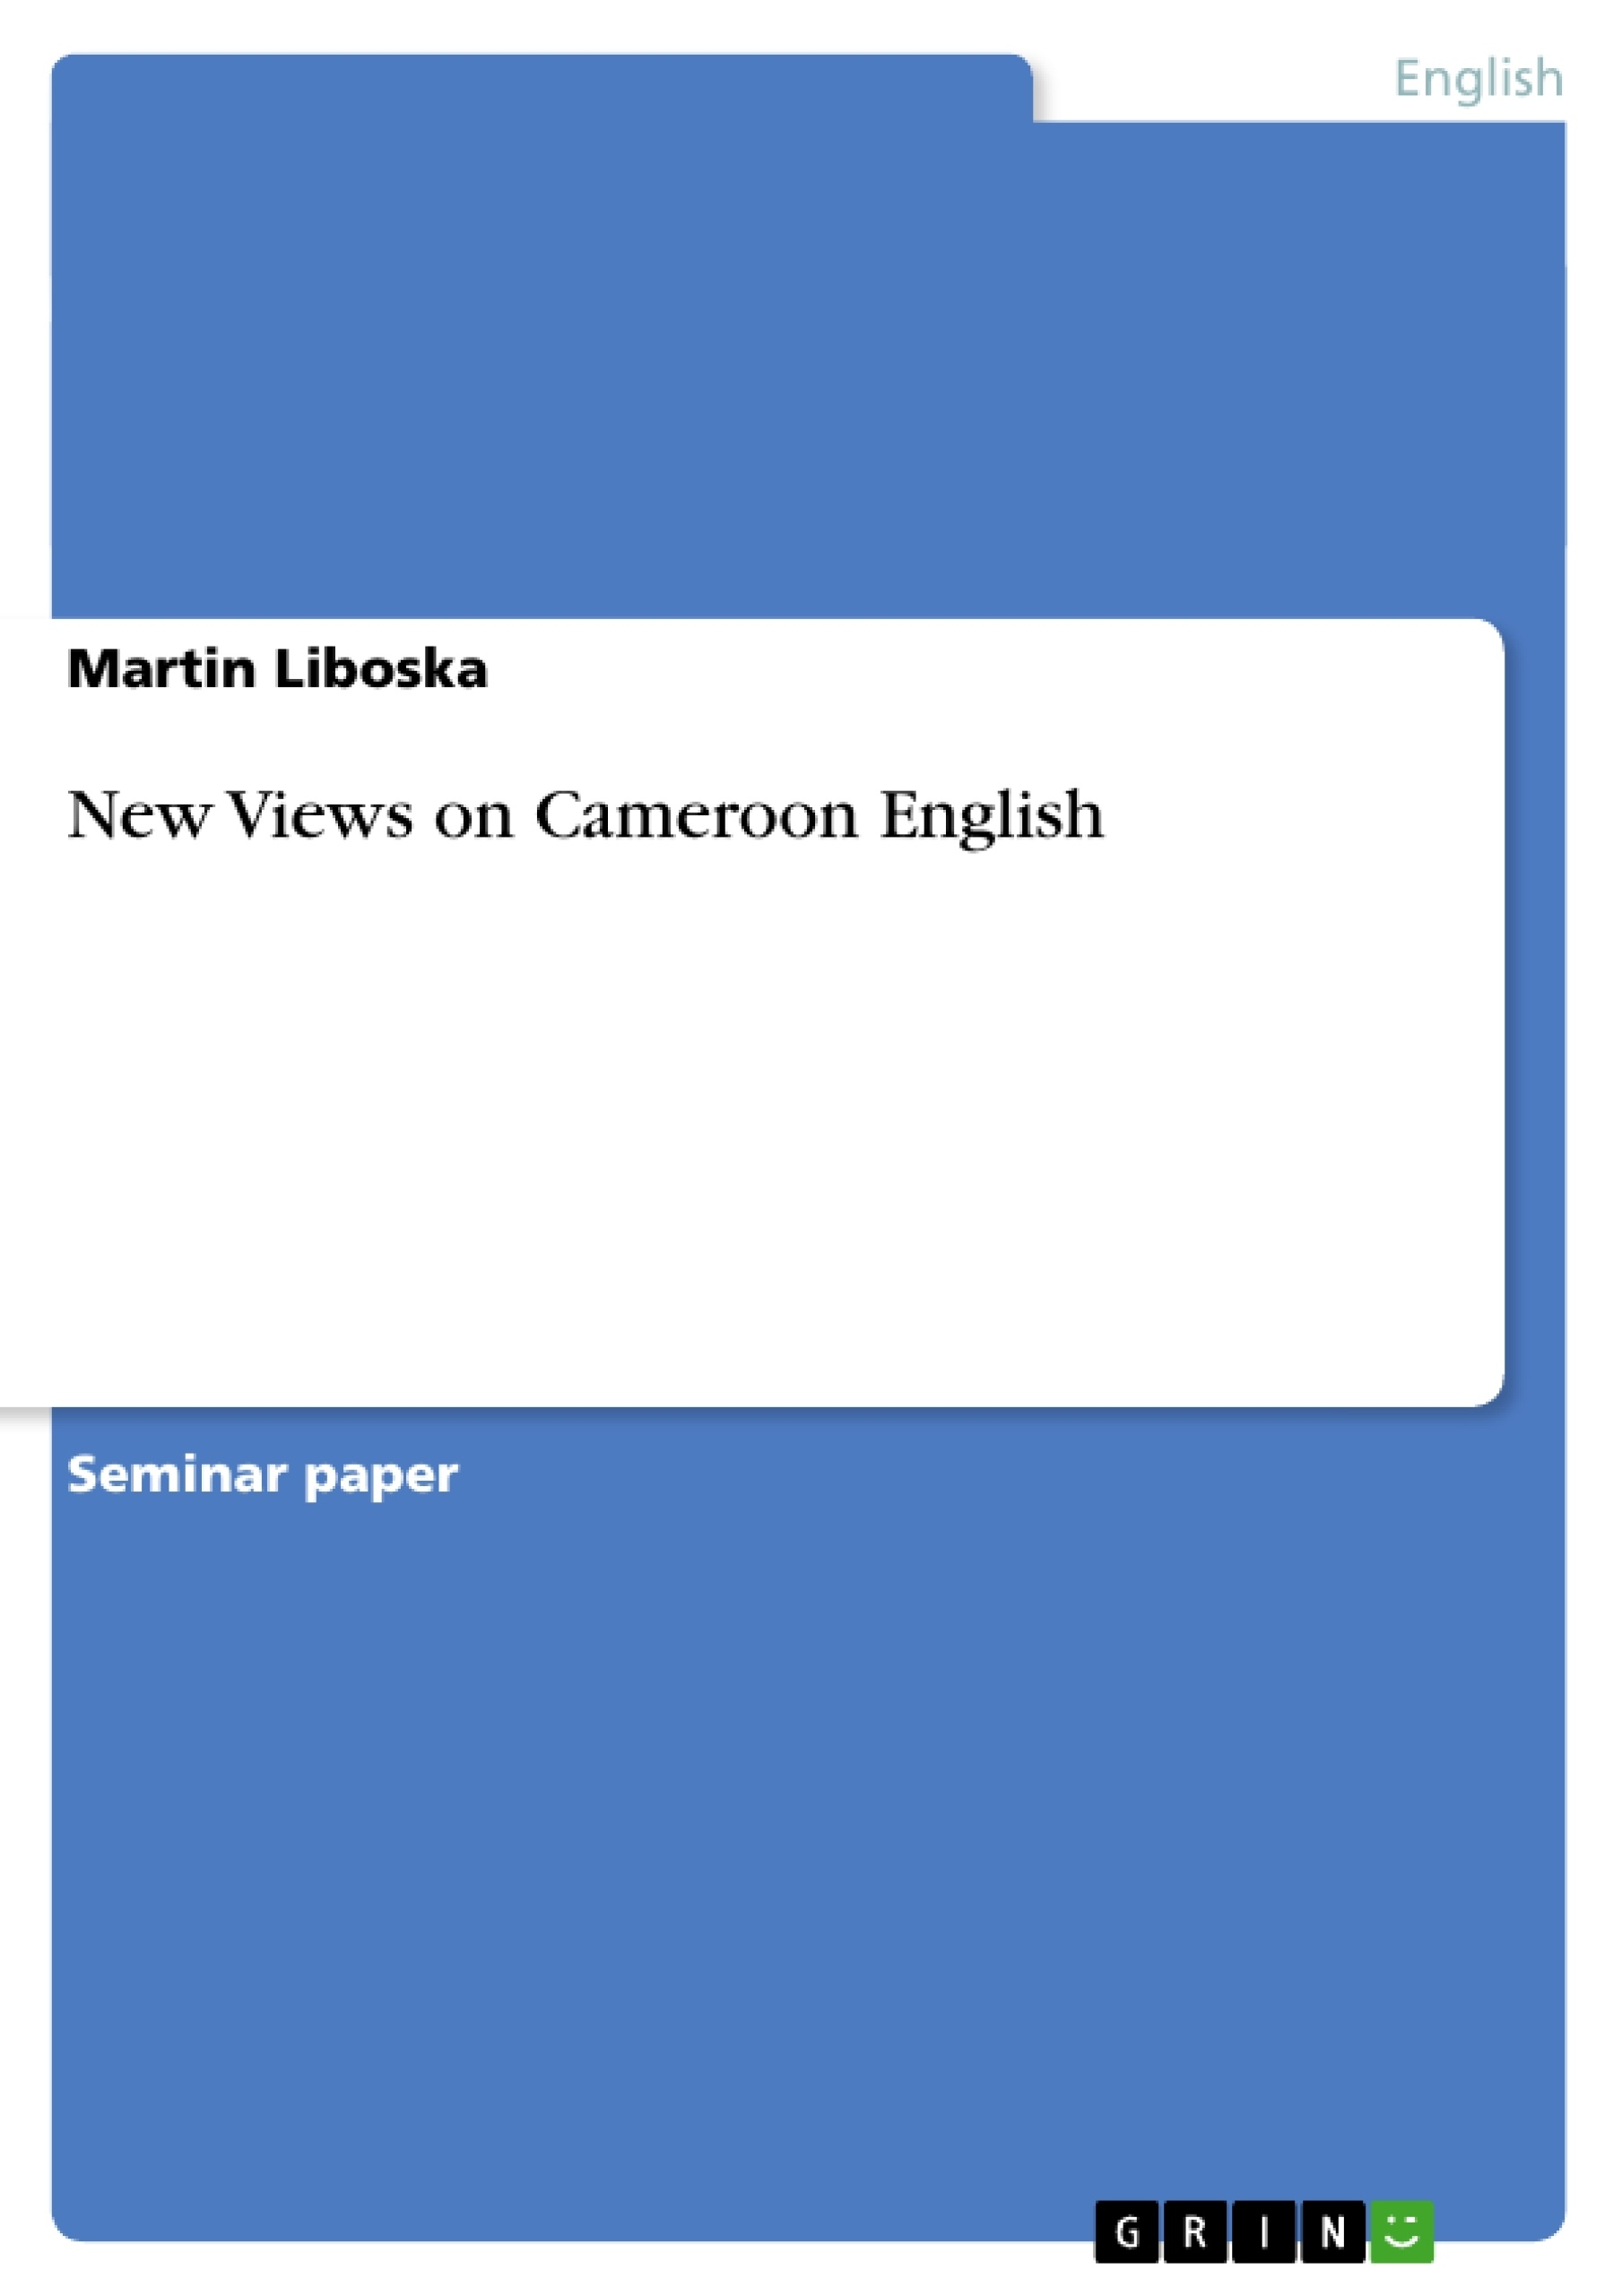 Title: New Views on Cameroon English